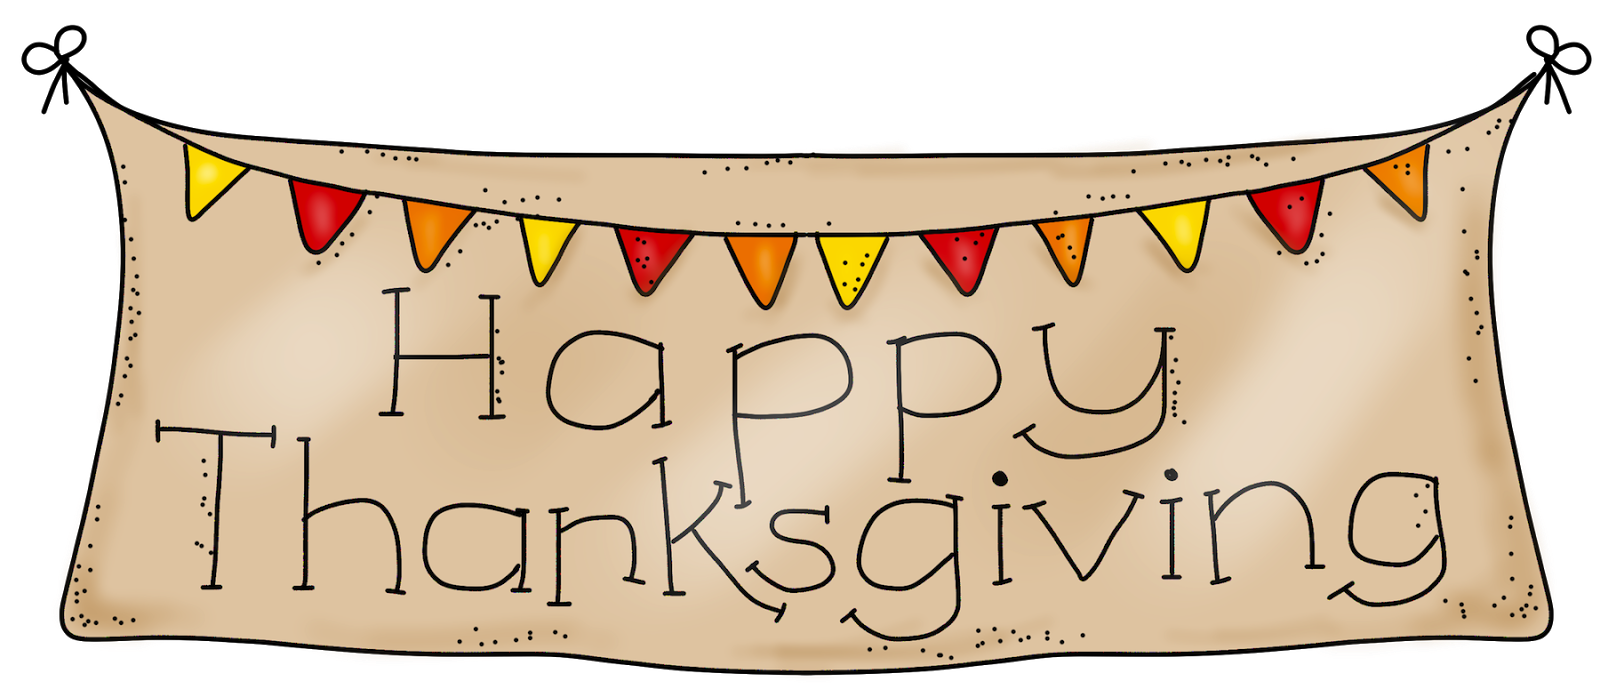 It is almost thanksgiving clipart clip art freeuse download JENNA PRITCHARD, HOLISTIC NUTRITIONIST AND LIFESTYLE COACH - Blog clip art freeuse download